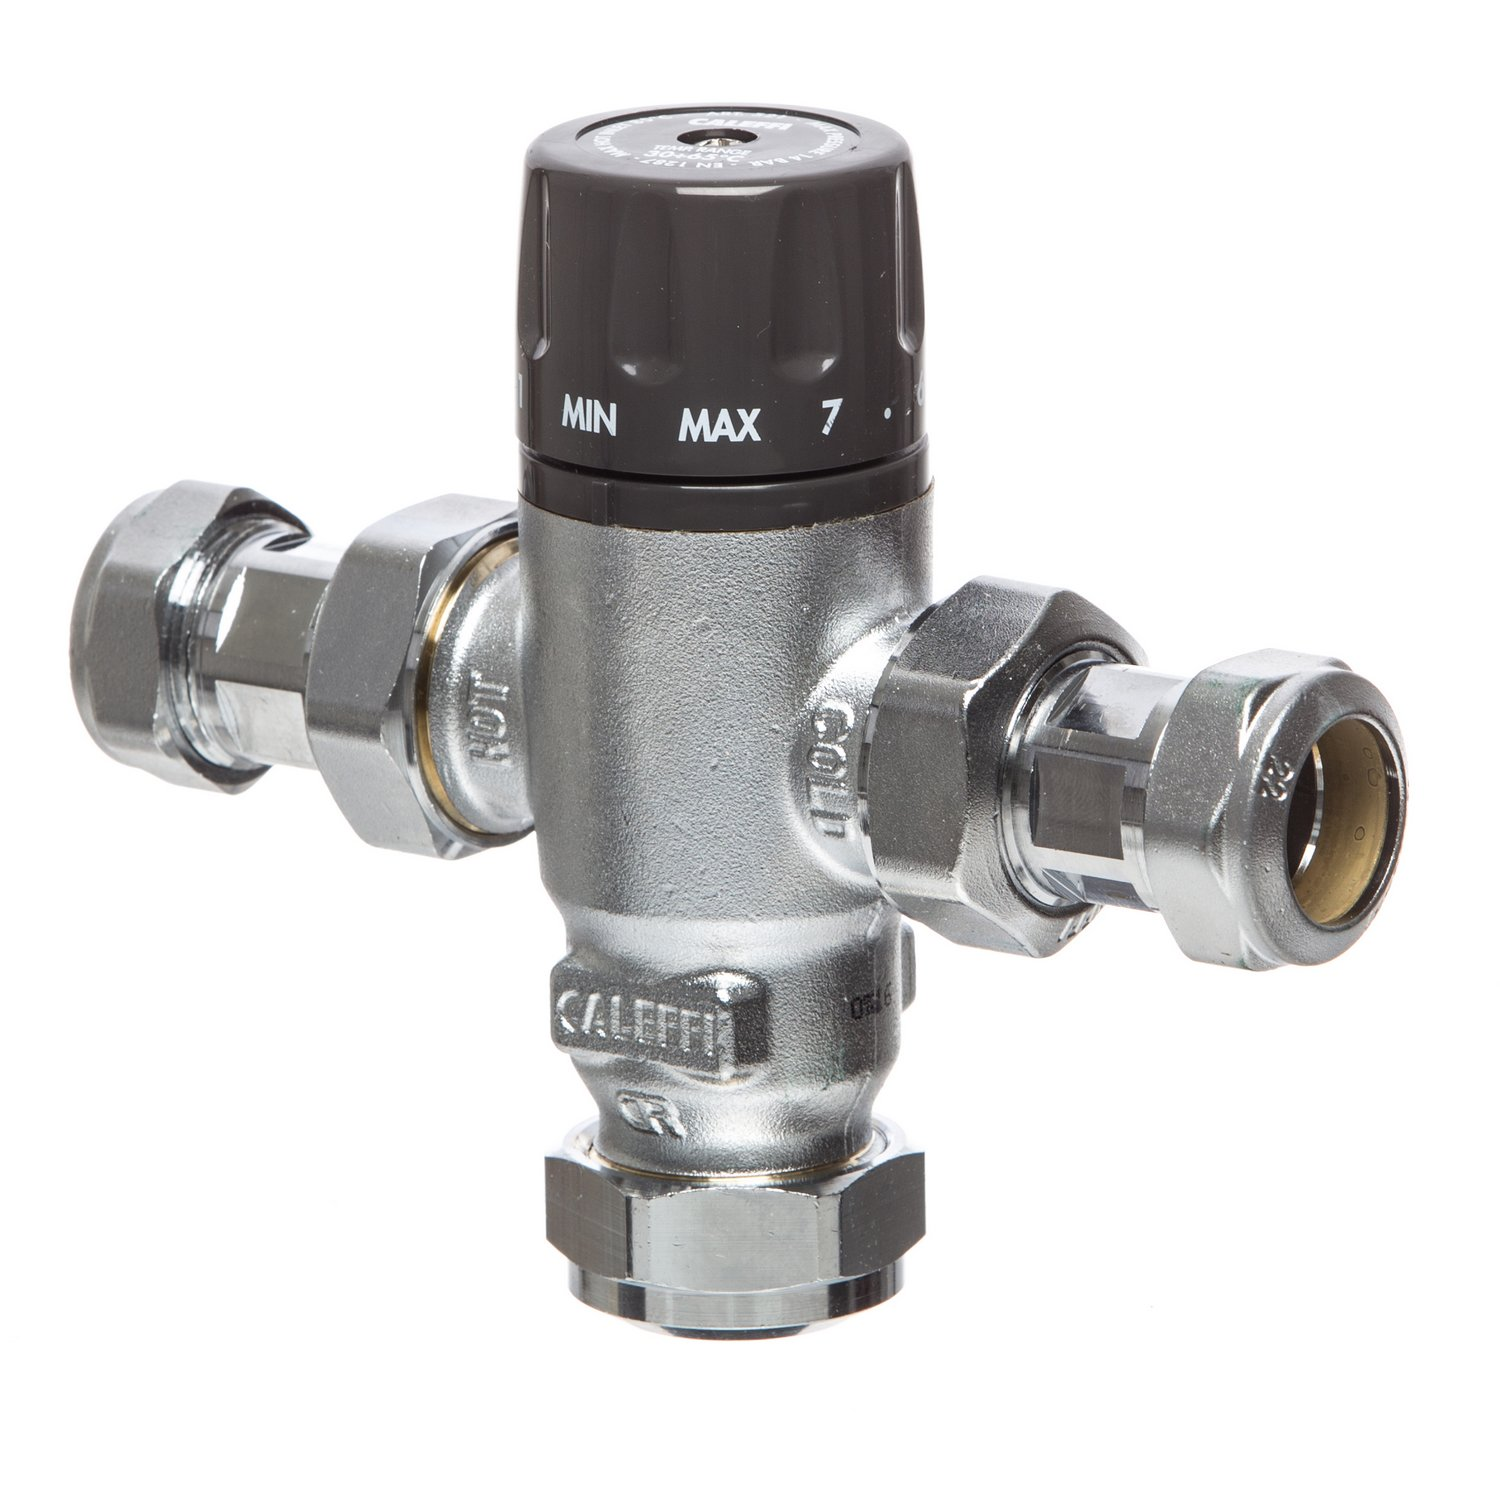 https://www.mepstock.co.uk/admin/images/MIXCAL III THERMOSTATIC FAILSAFE MIXING VALVE - ART 5211 (INC. CHECK VALVES) 1.jpg